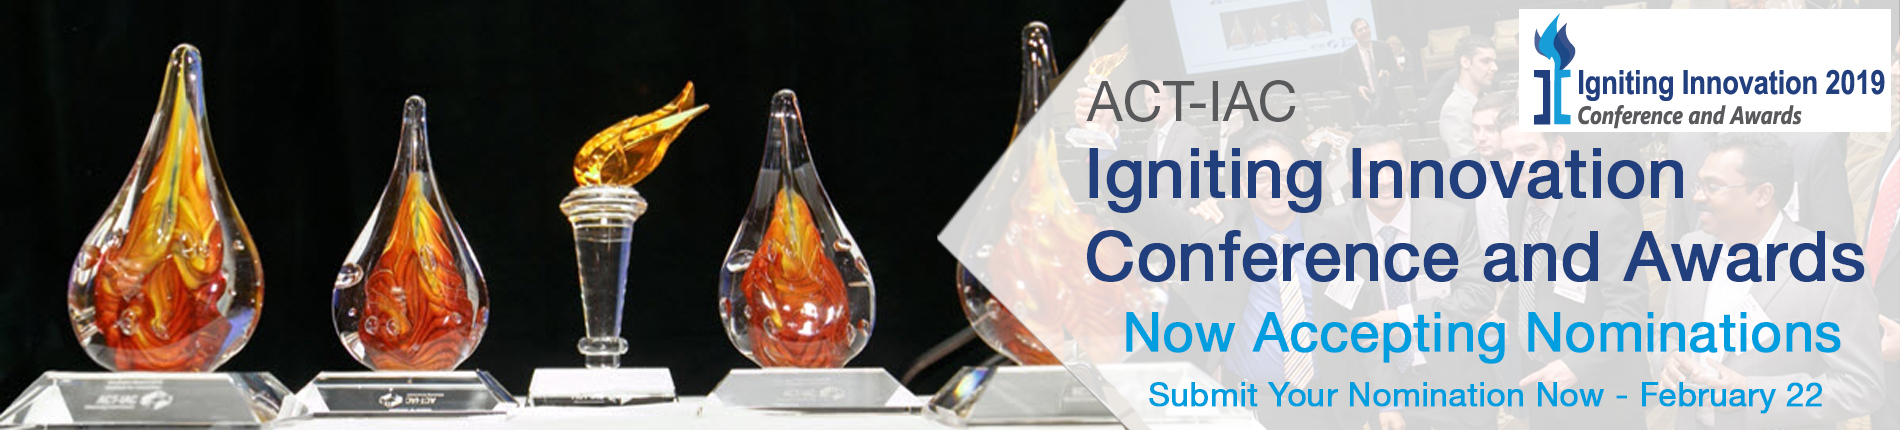 ACT-IAC Igniting Innovation 2019 Call for Nominations